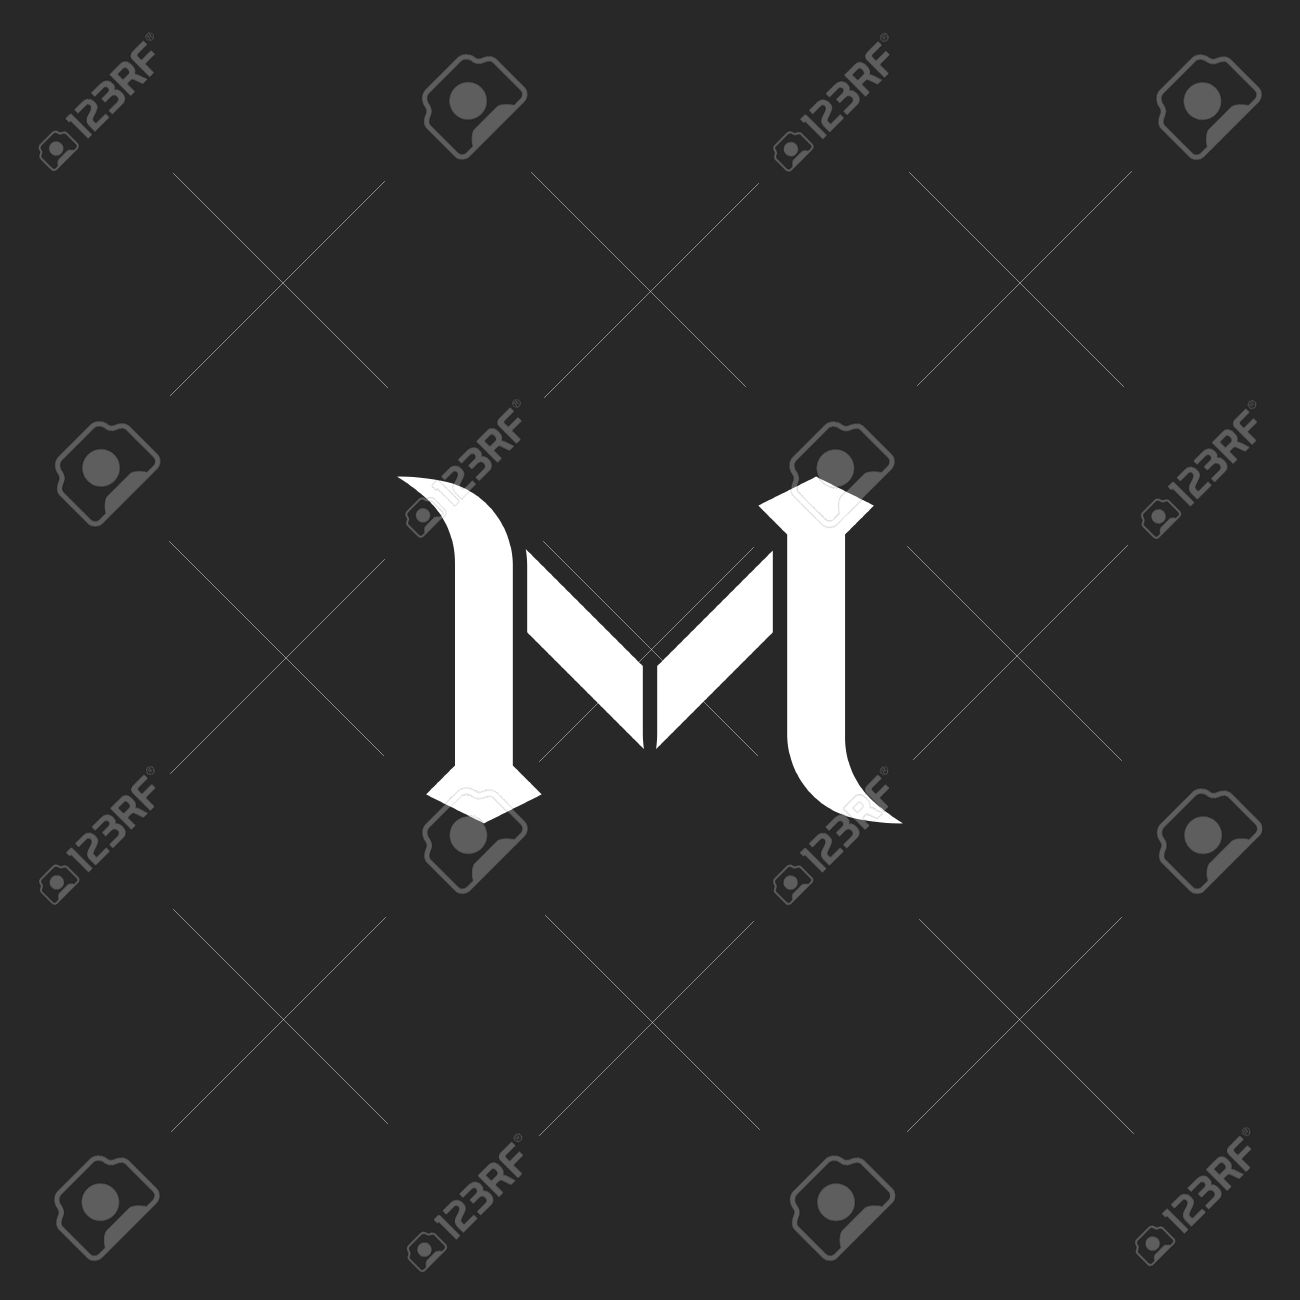 letter m logo medieval style wedding invitation mockup vintage calligraphic design element for business